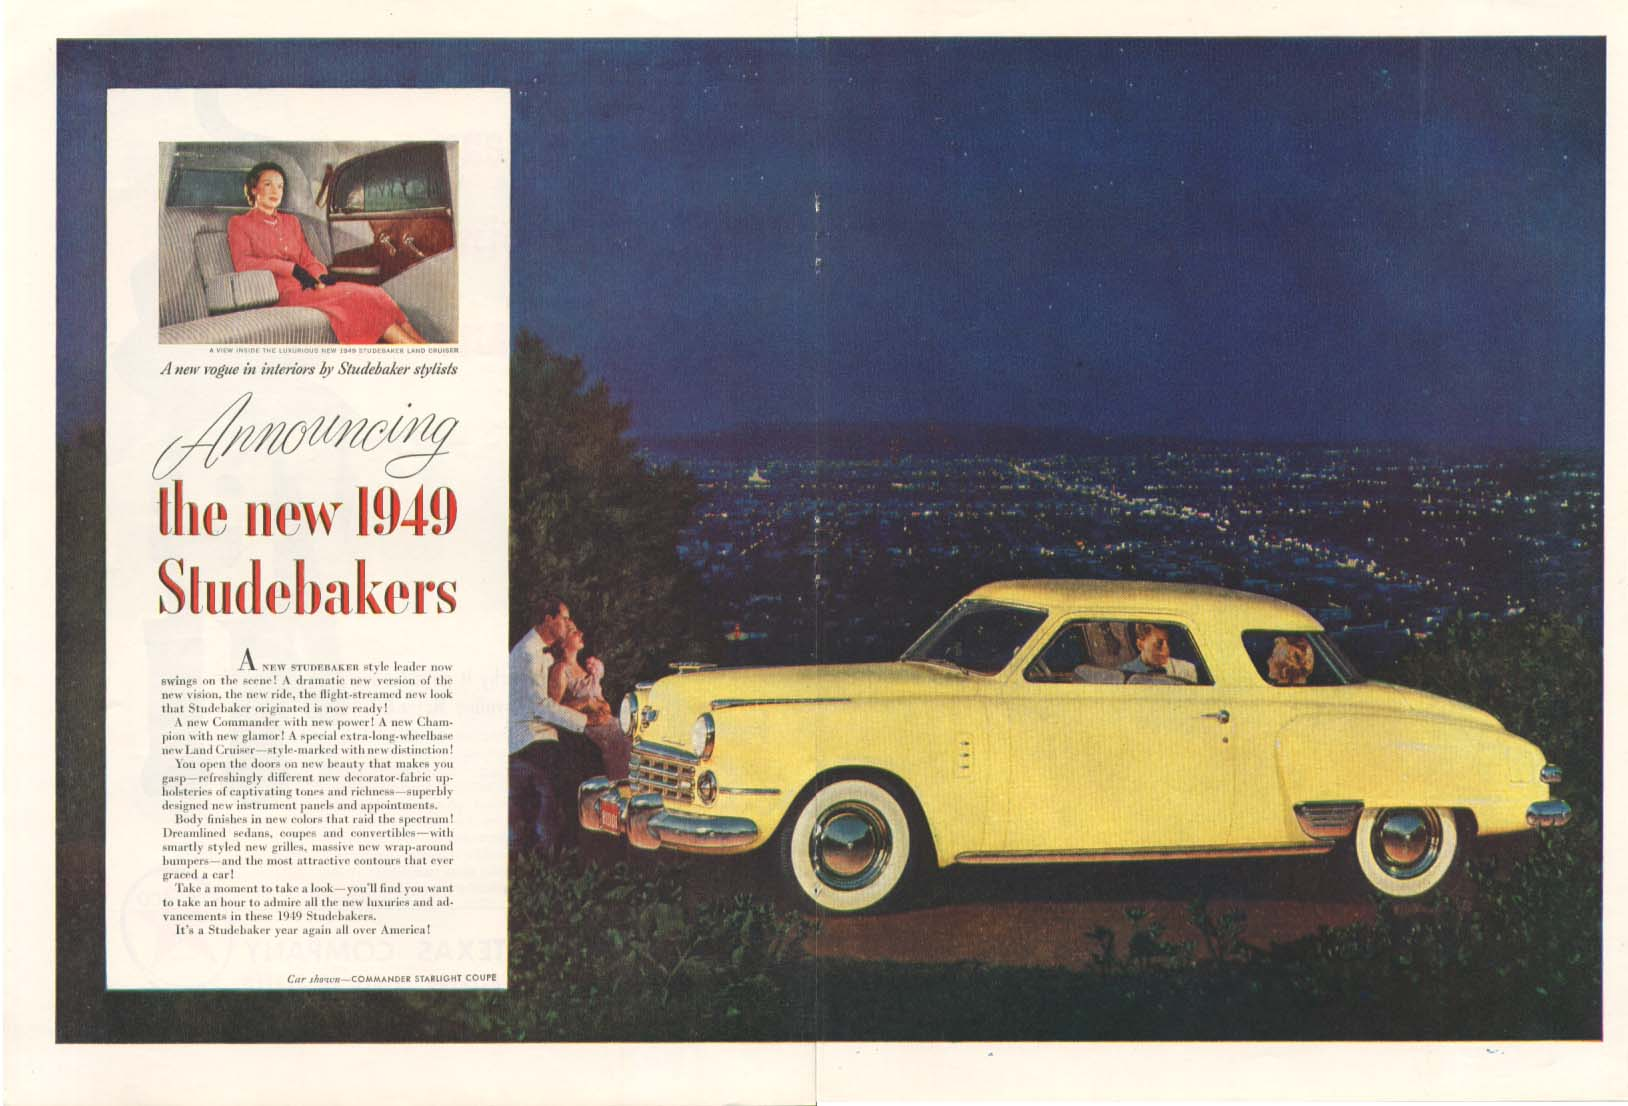 Announcing the new 1949 Studebaker 2-page ad